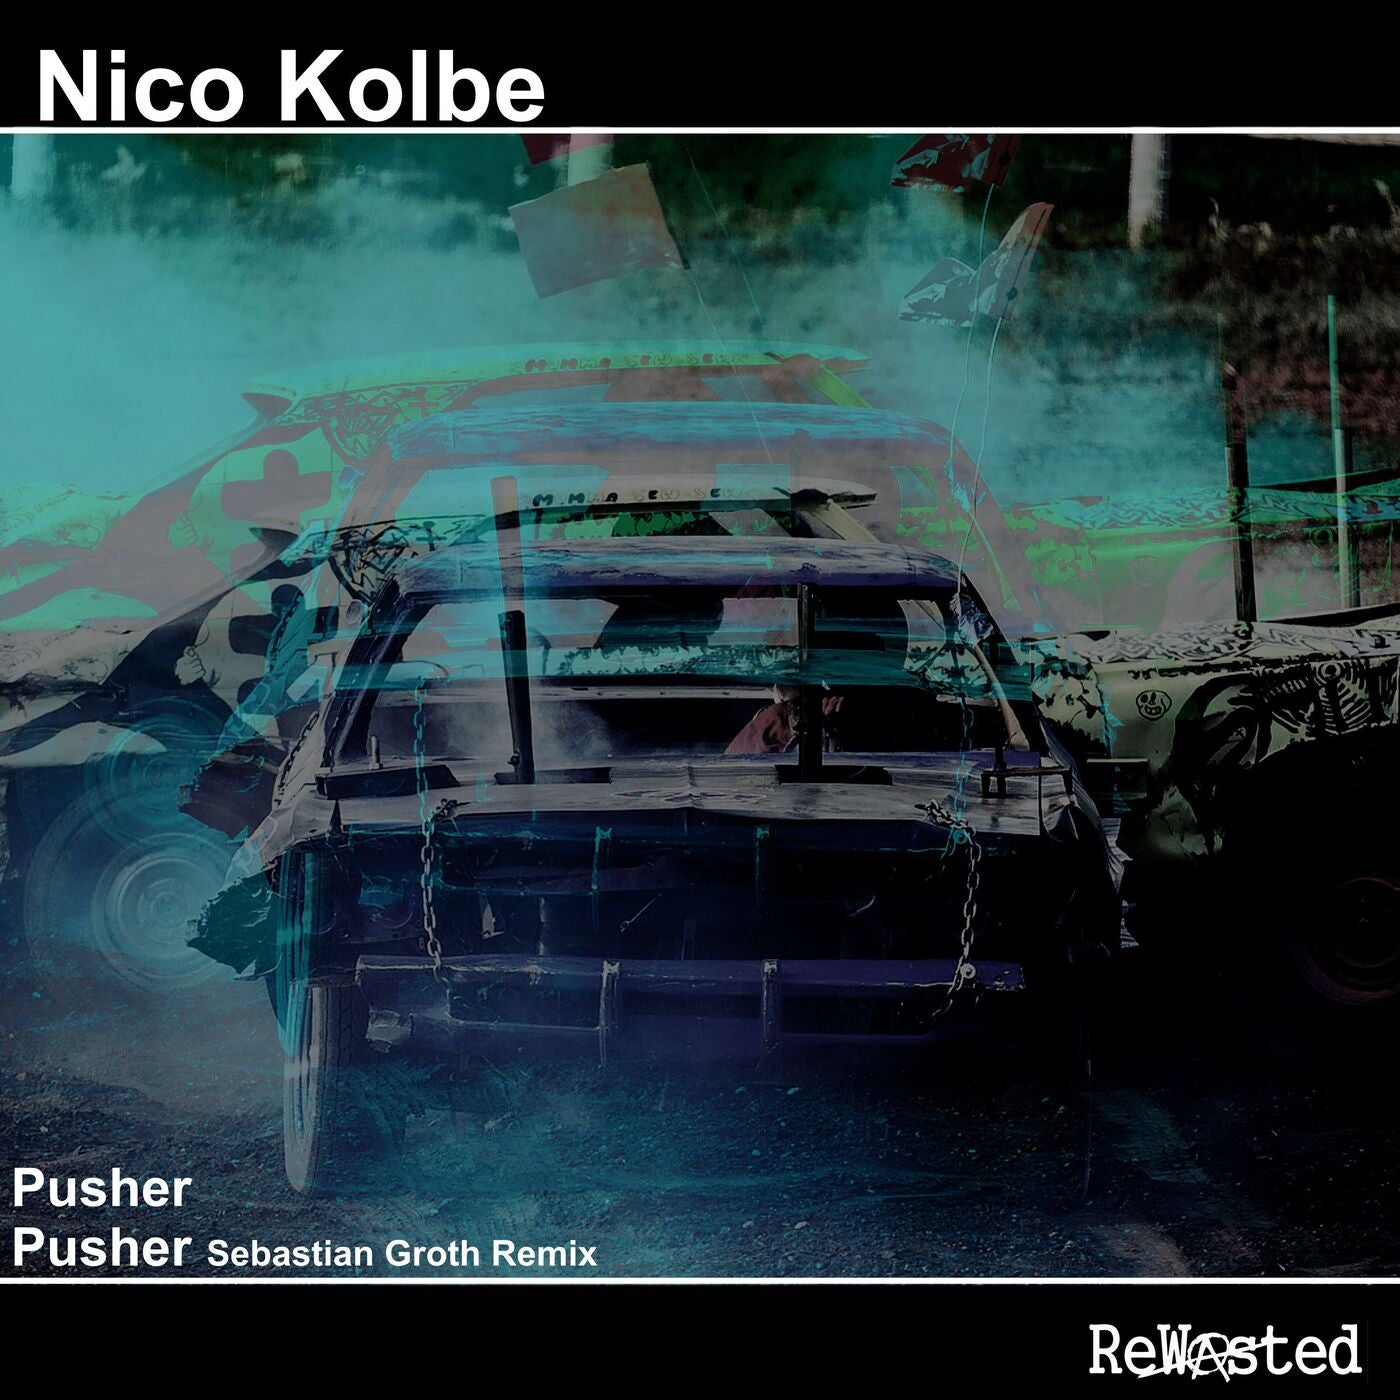 Pusher (Sebastian Groth Remix)